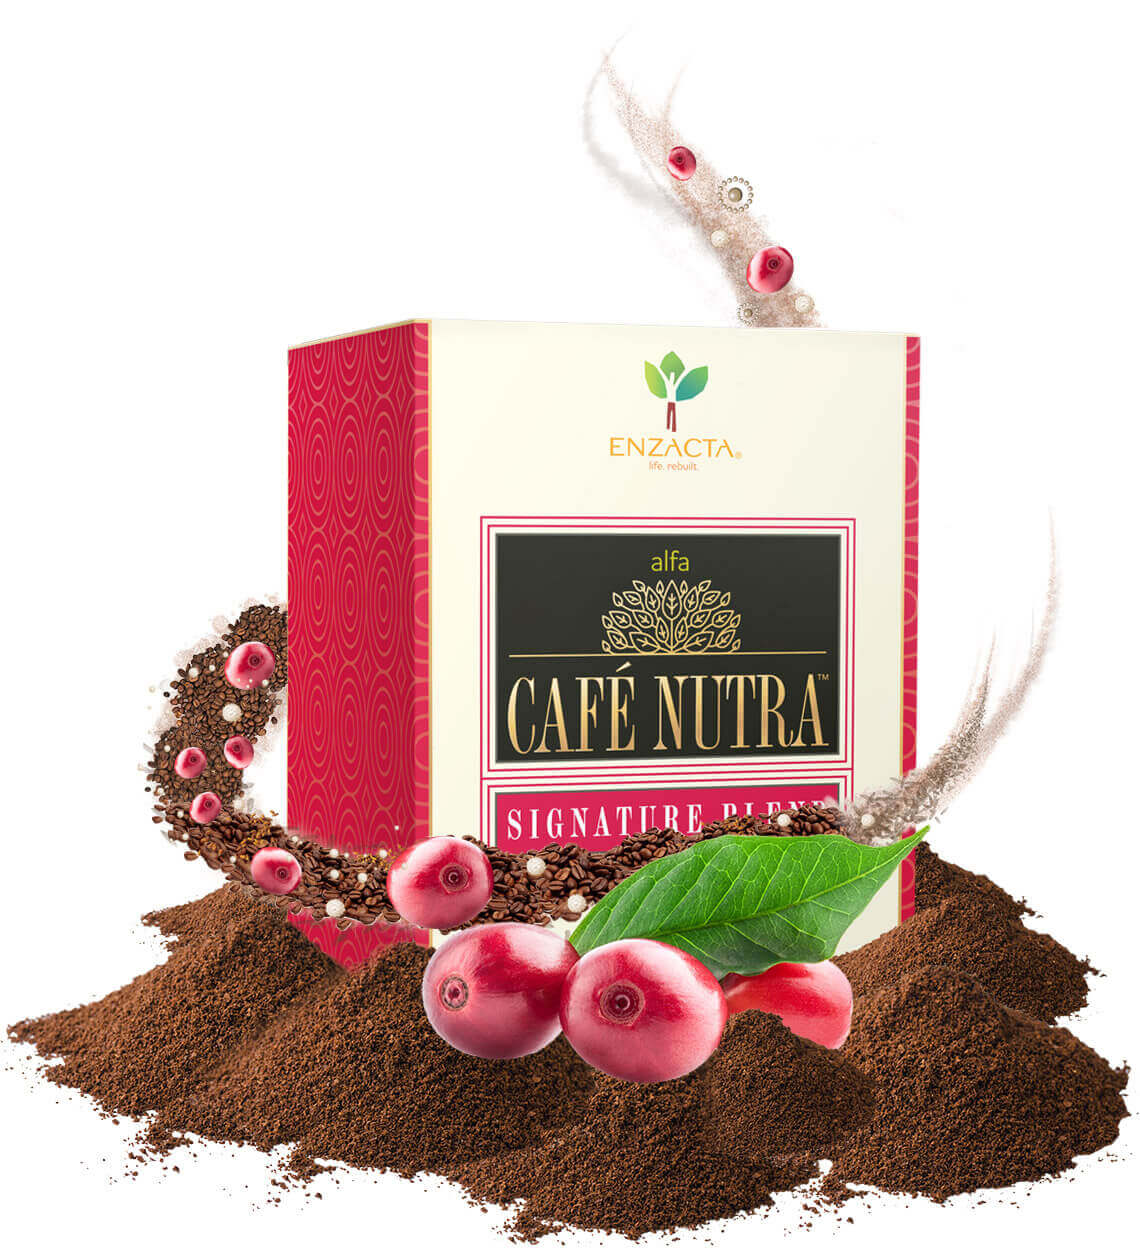 alfa CAFE NUTRA Signature Blend - Box ingredients